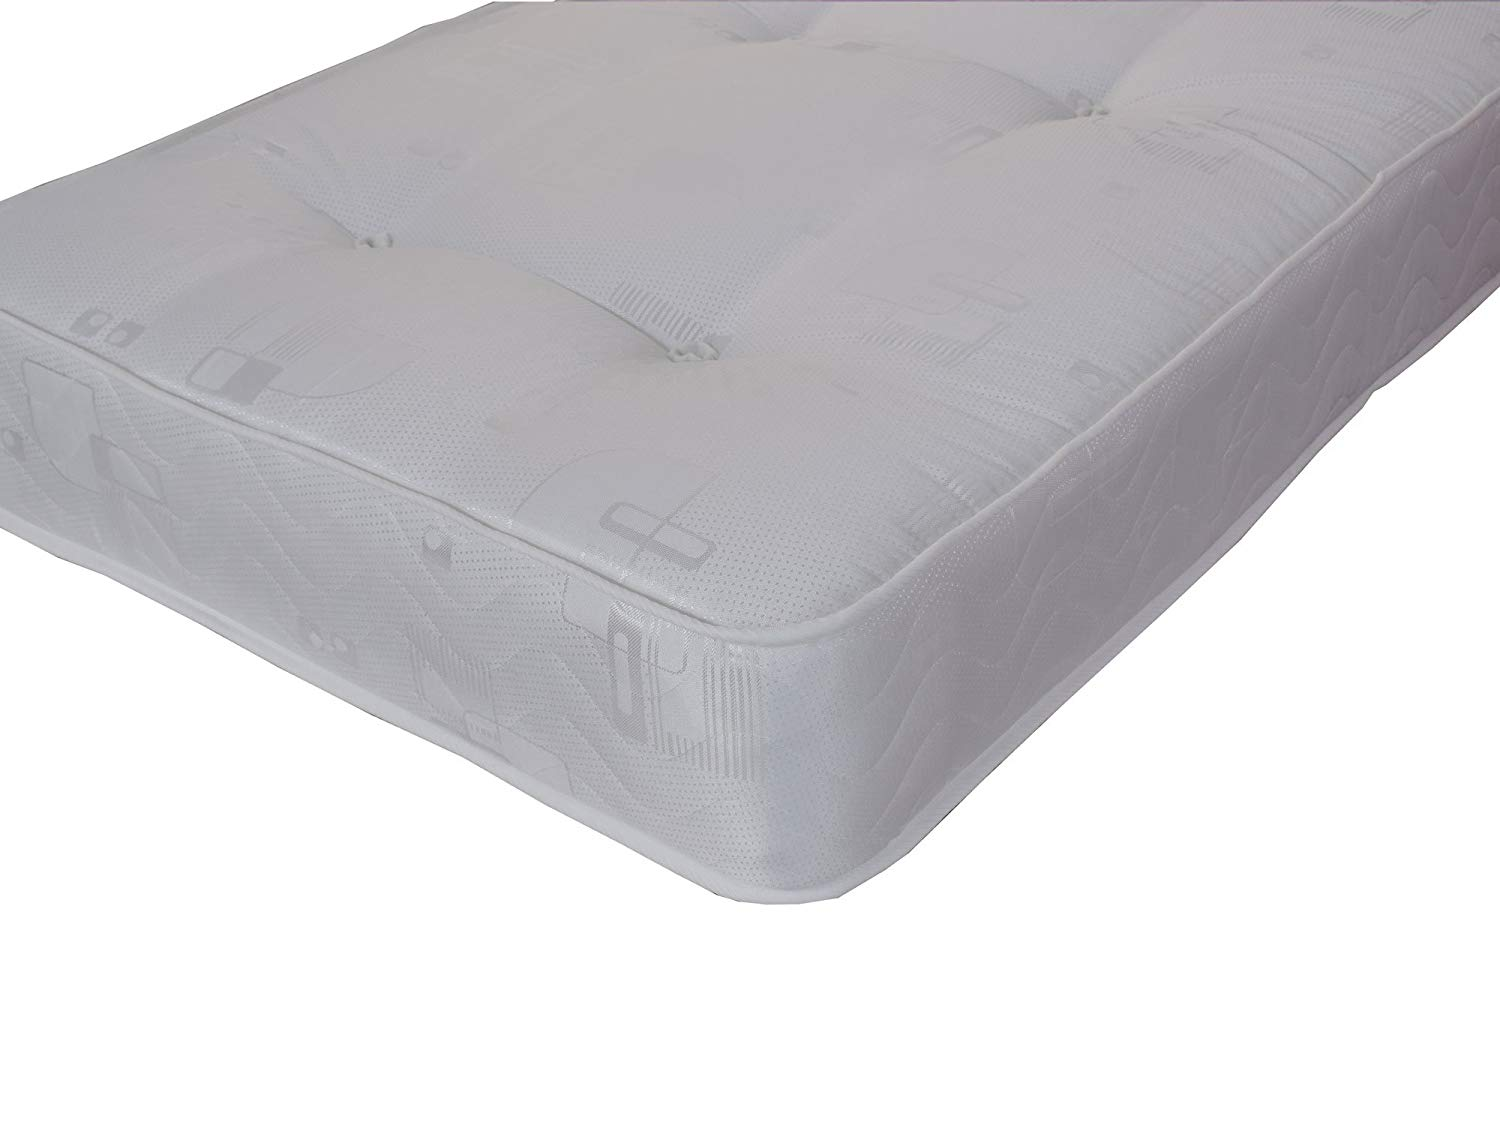 single 3ft mattress 90 x 190 (cm) Harmony deep hand tufted luxury mattress FBR1347